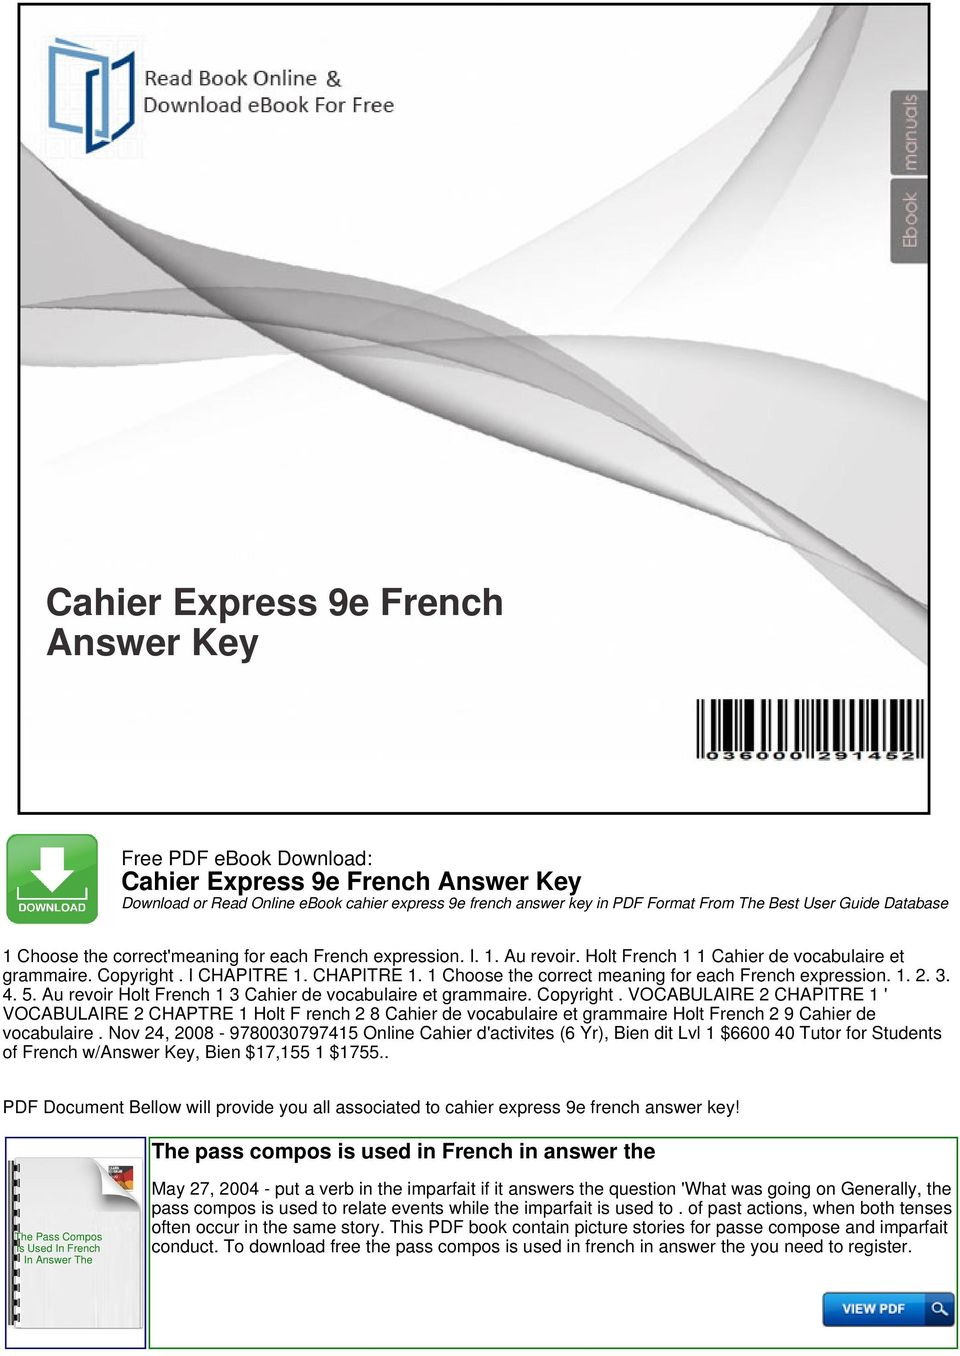 Cahier express 9e french answer key pdf 3 4 5 au revoir holt 1 3 cahier de vocabulaire et grammaire fandeluxe Images